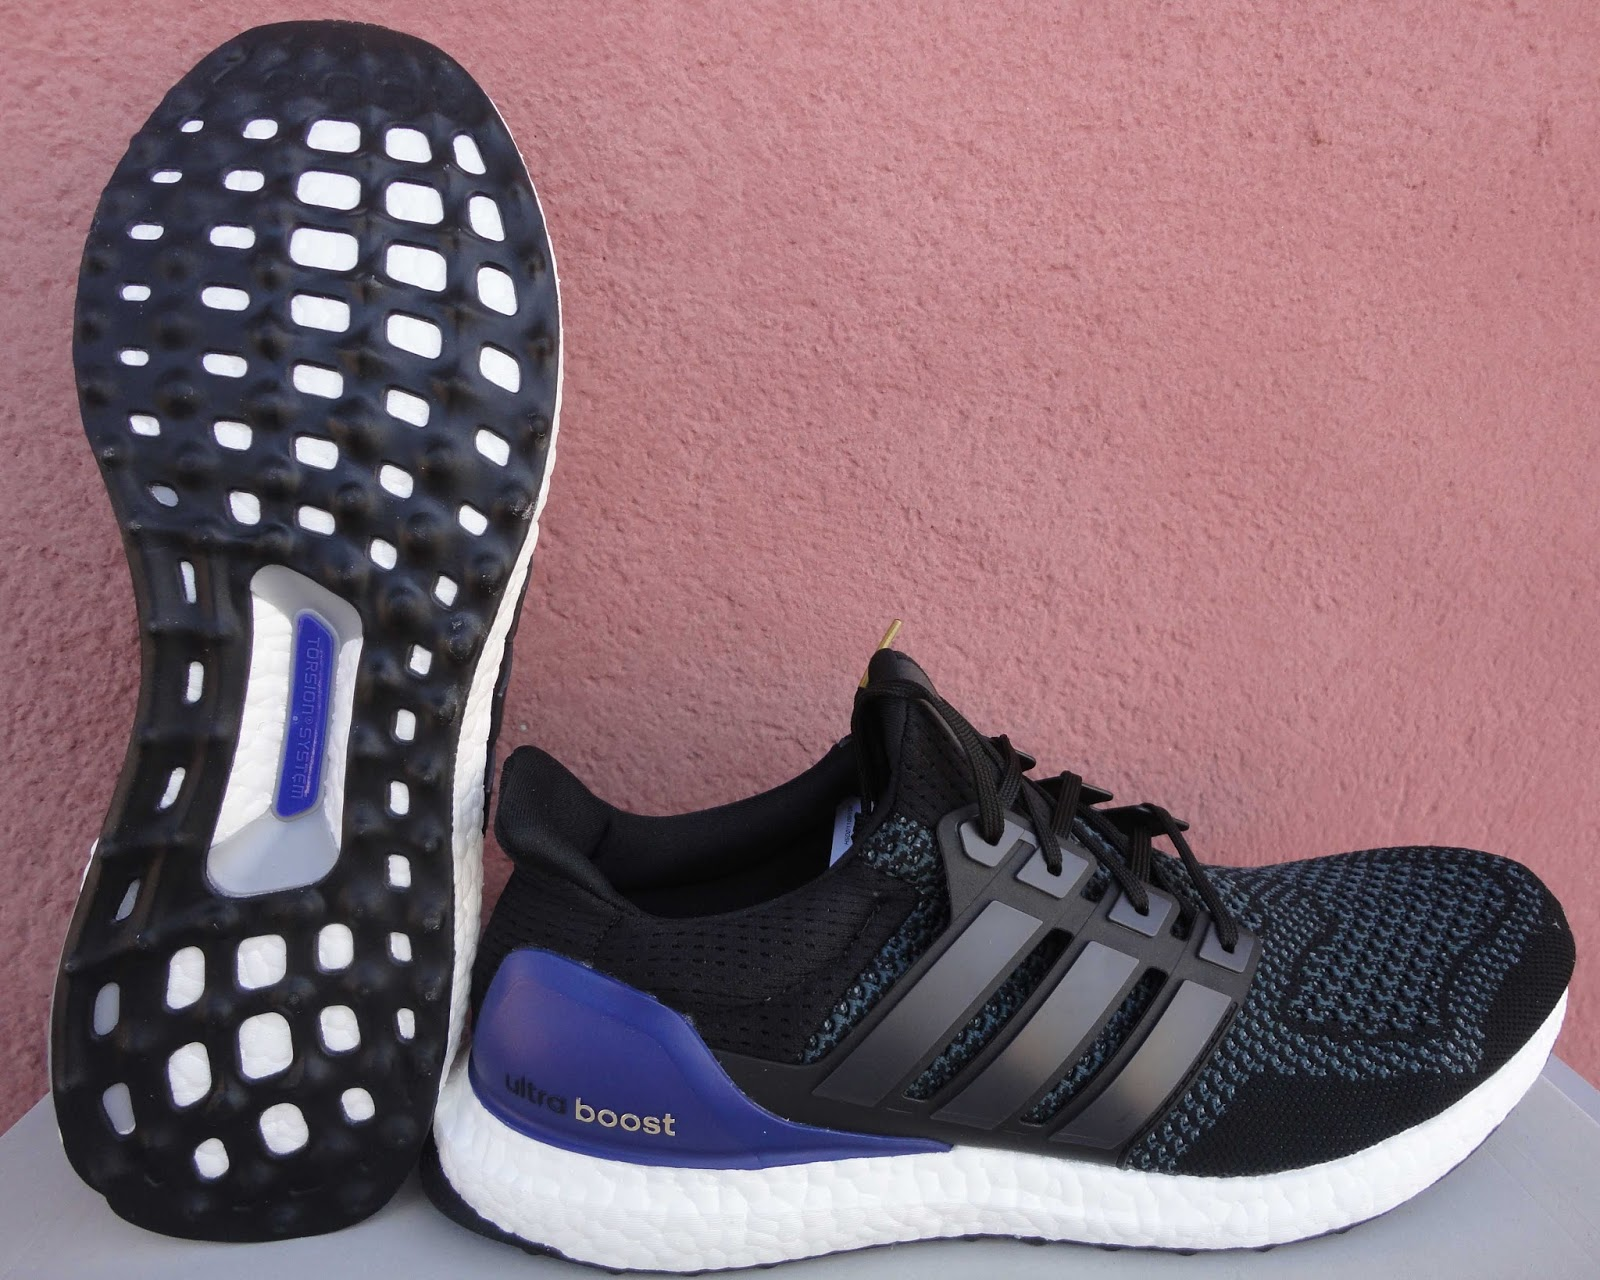 Ultra Running Boost More And Adidas Filippo Inarrestabile Much 100 x6qZnxg